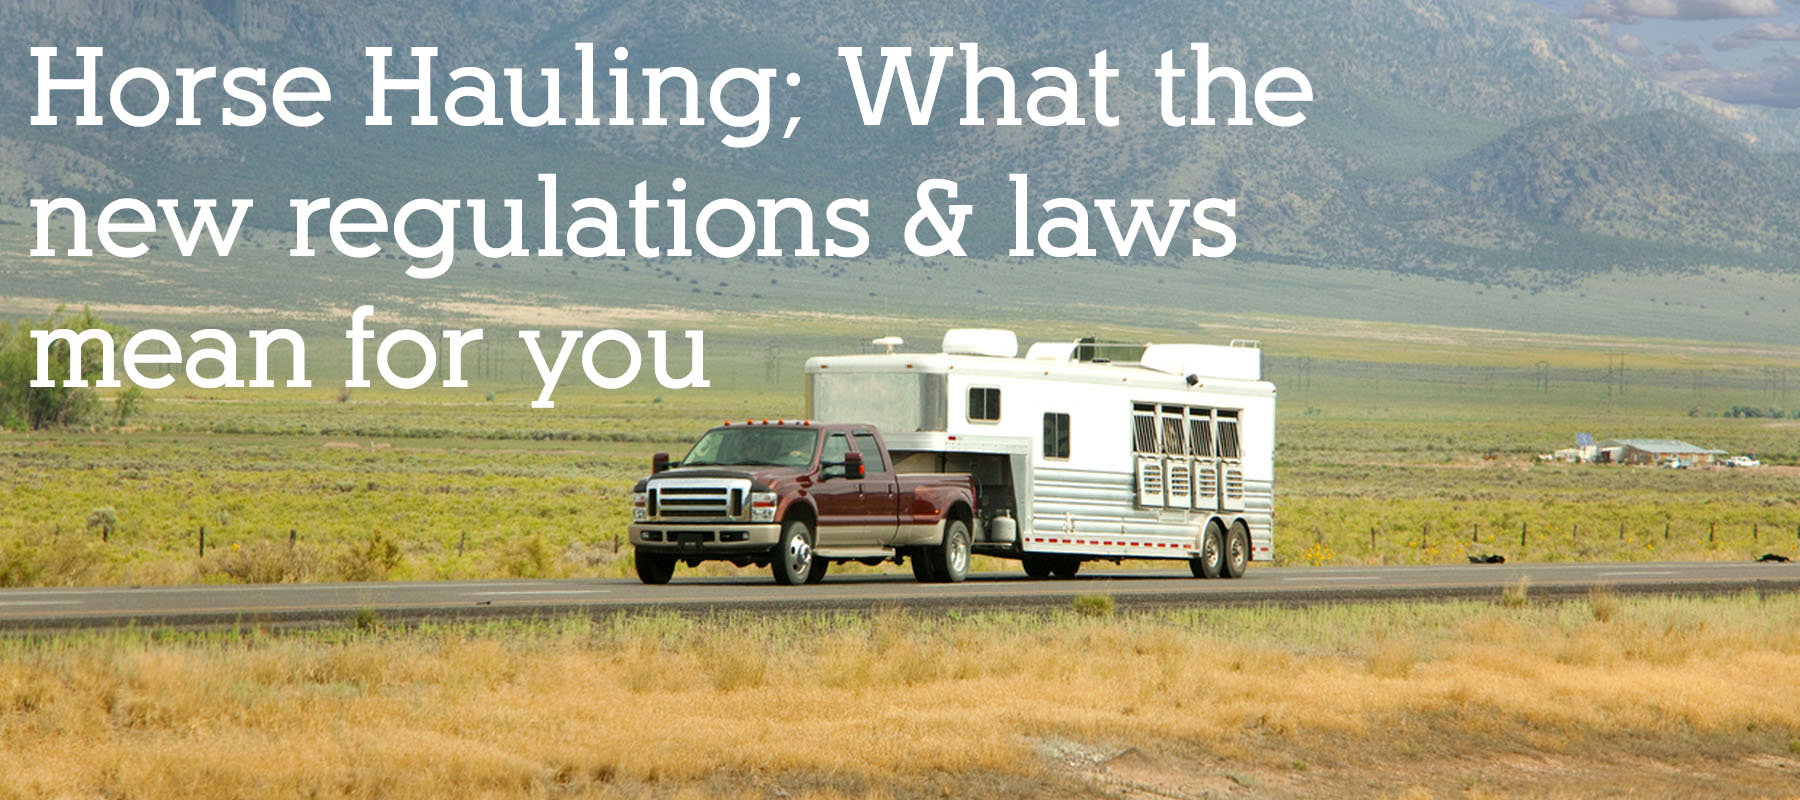 Horse Hauling - what the new regulations and laws mean for you